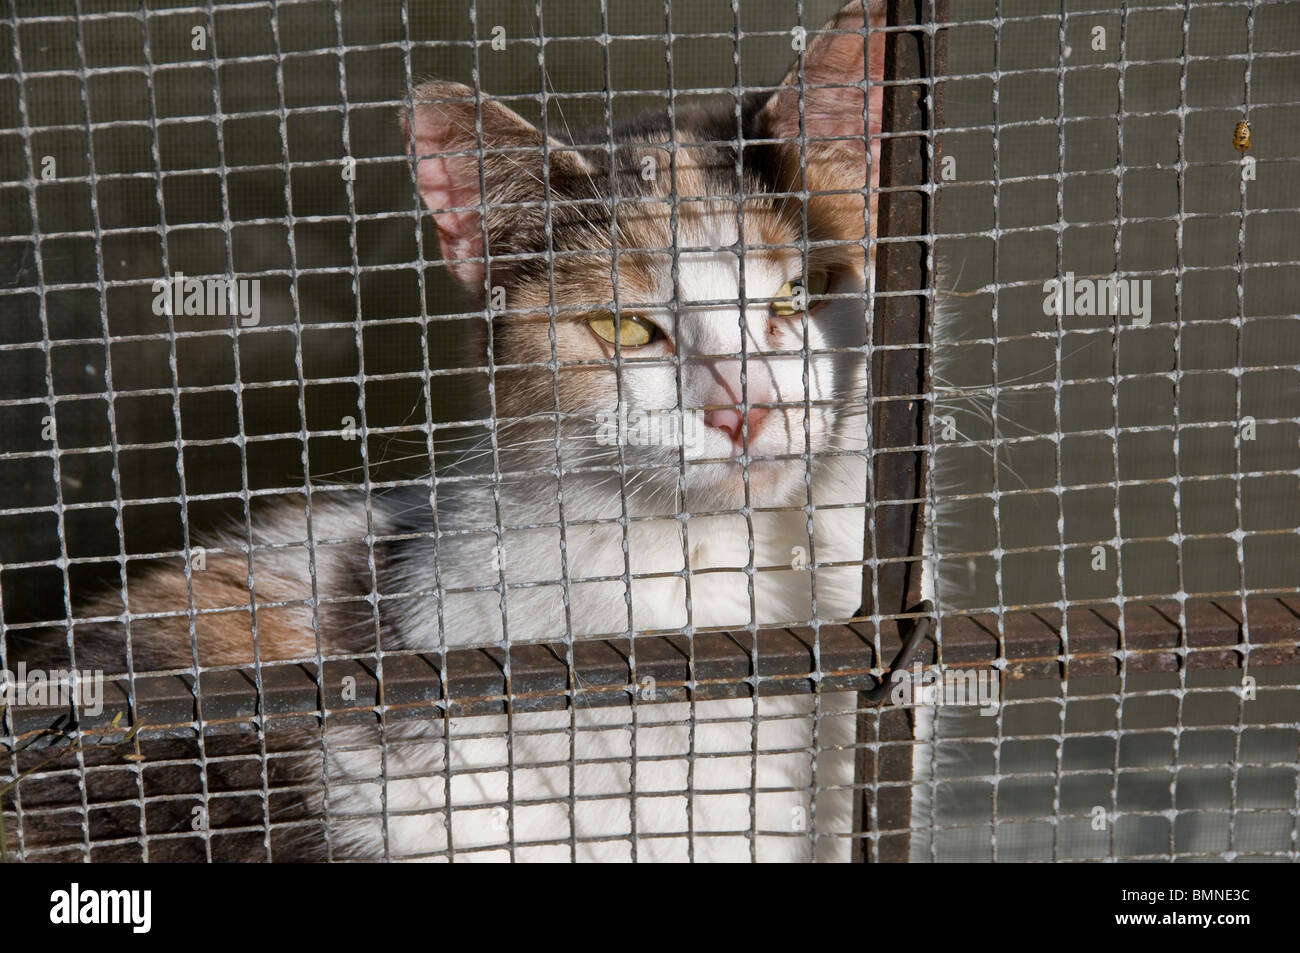 Cat in a cage - Stock Image